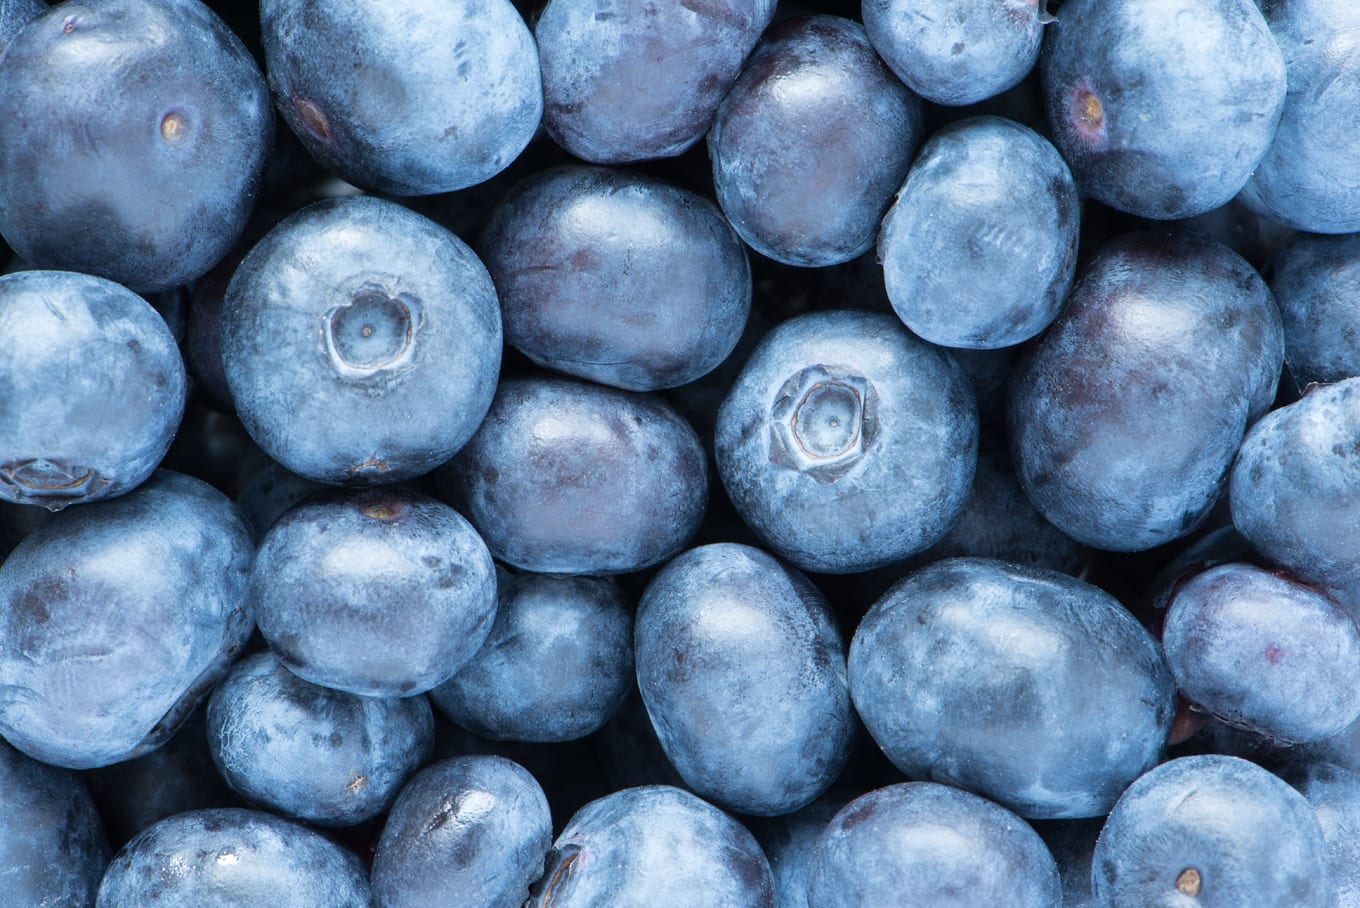 antioxidant-containing blueberries